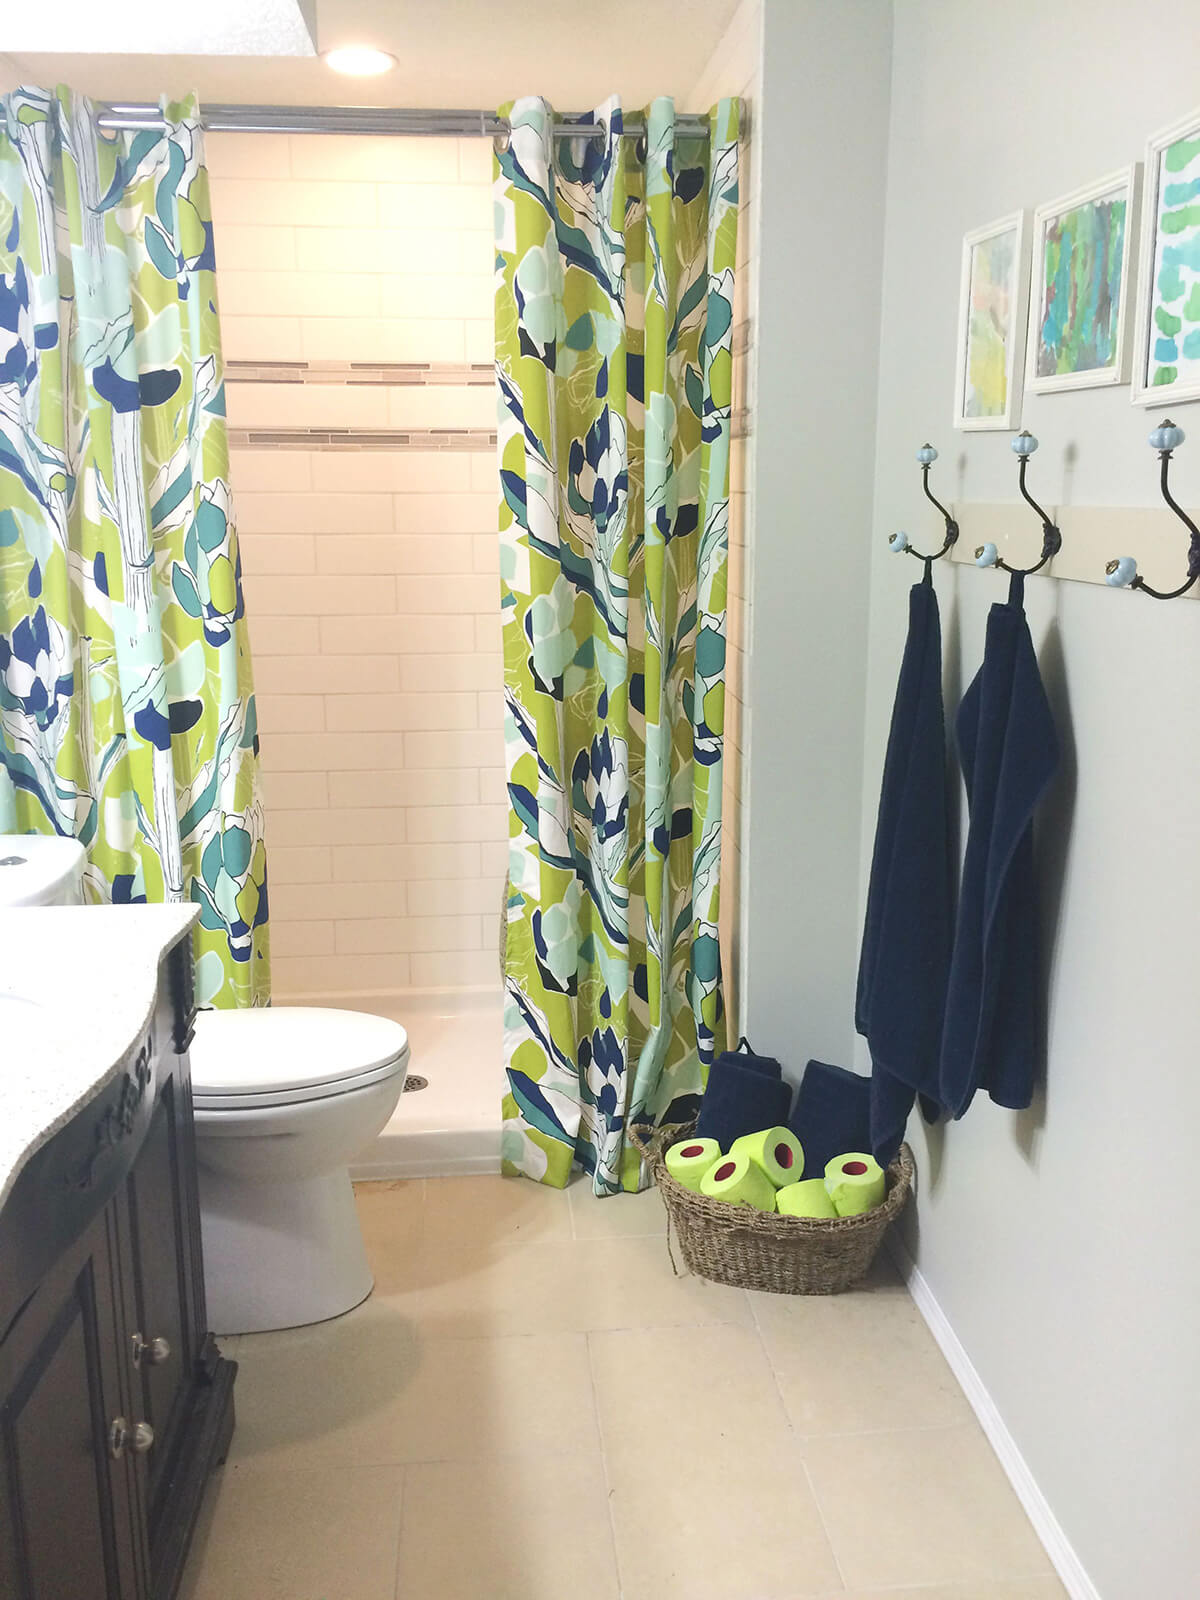 A Modern Bathroom Design with a Fun Pop of Color